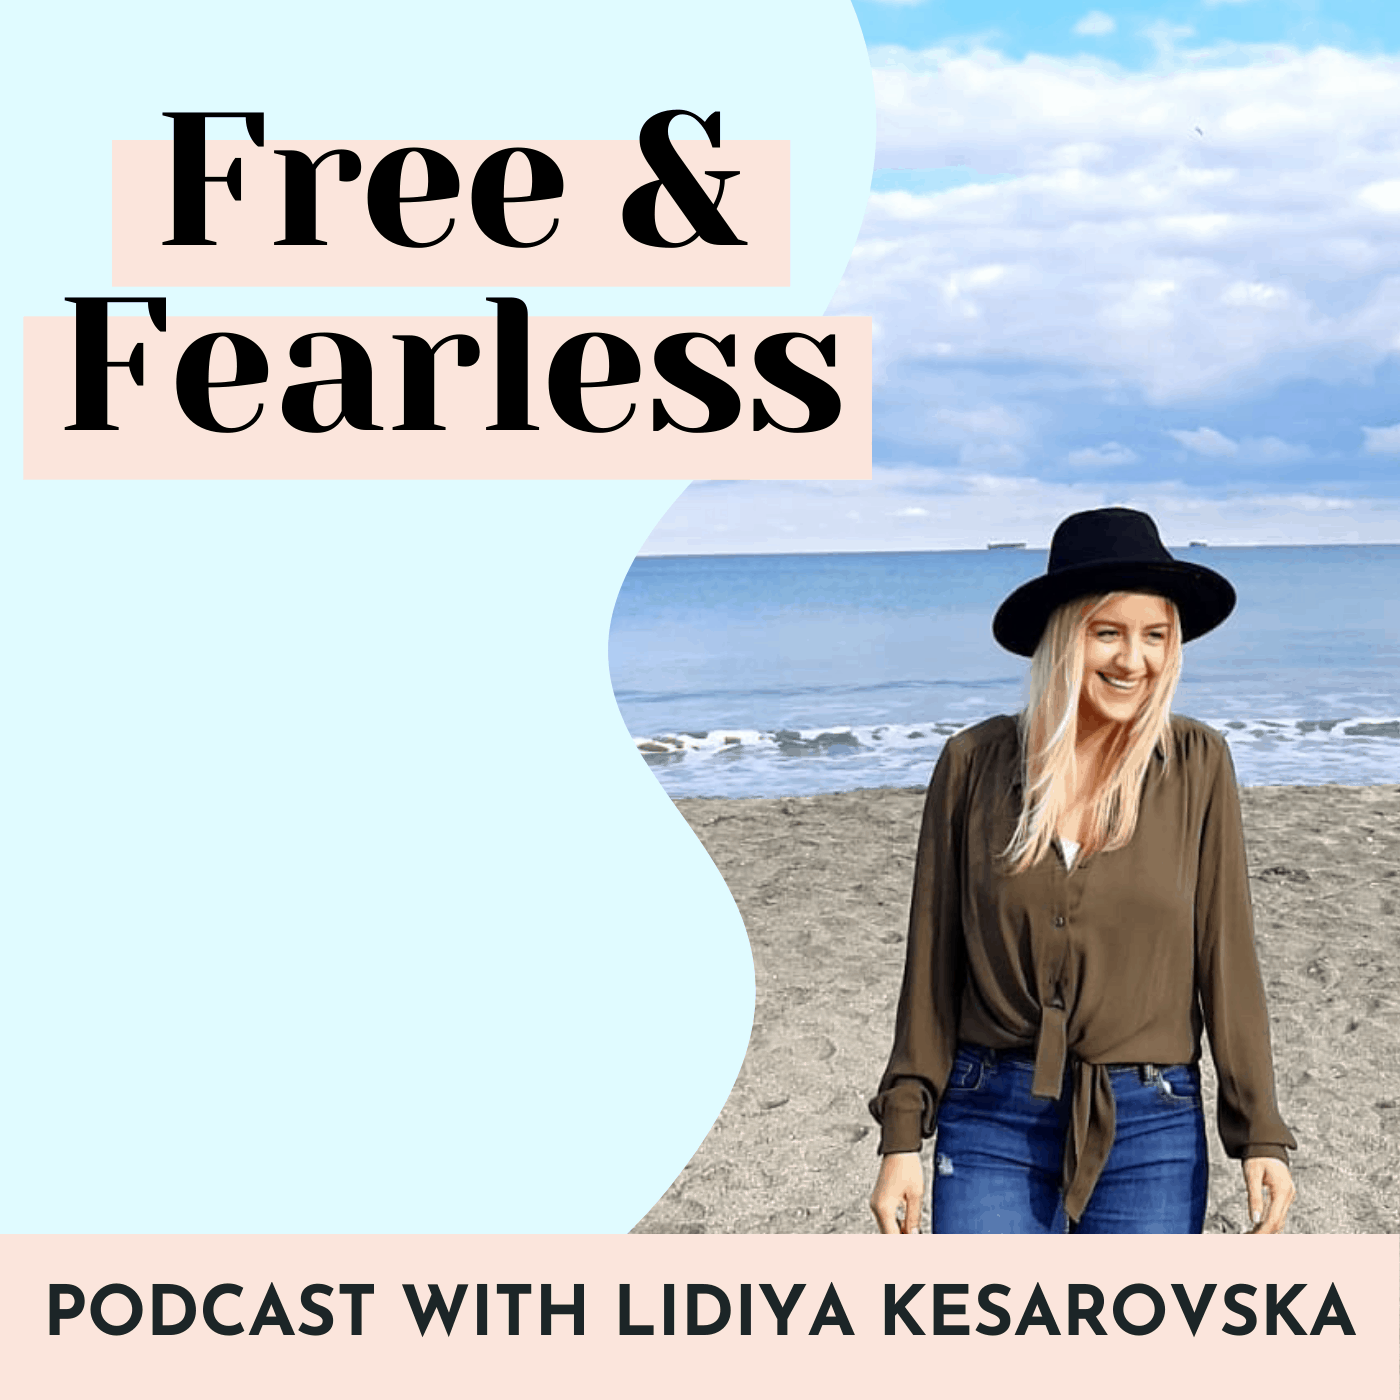 the free and fearless podcast by lidiya kesarovska